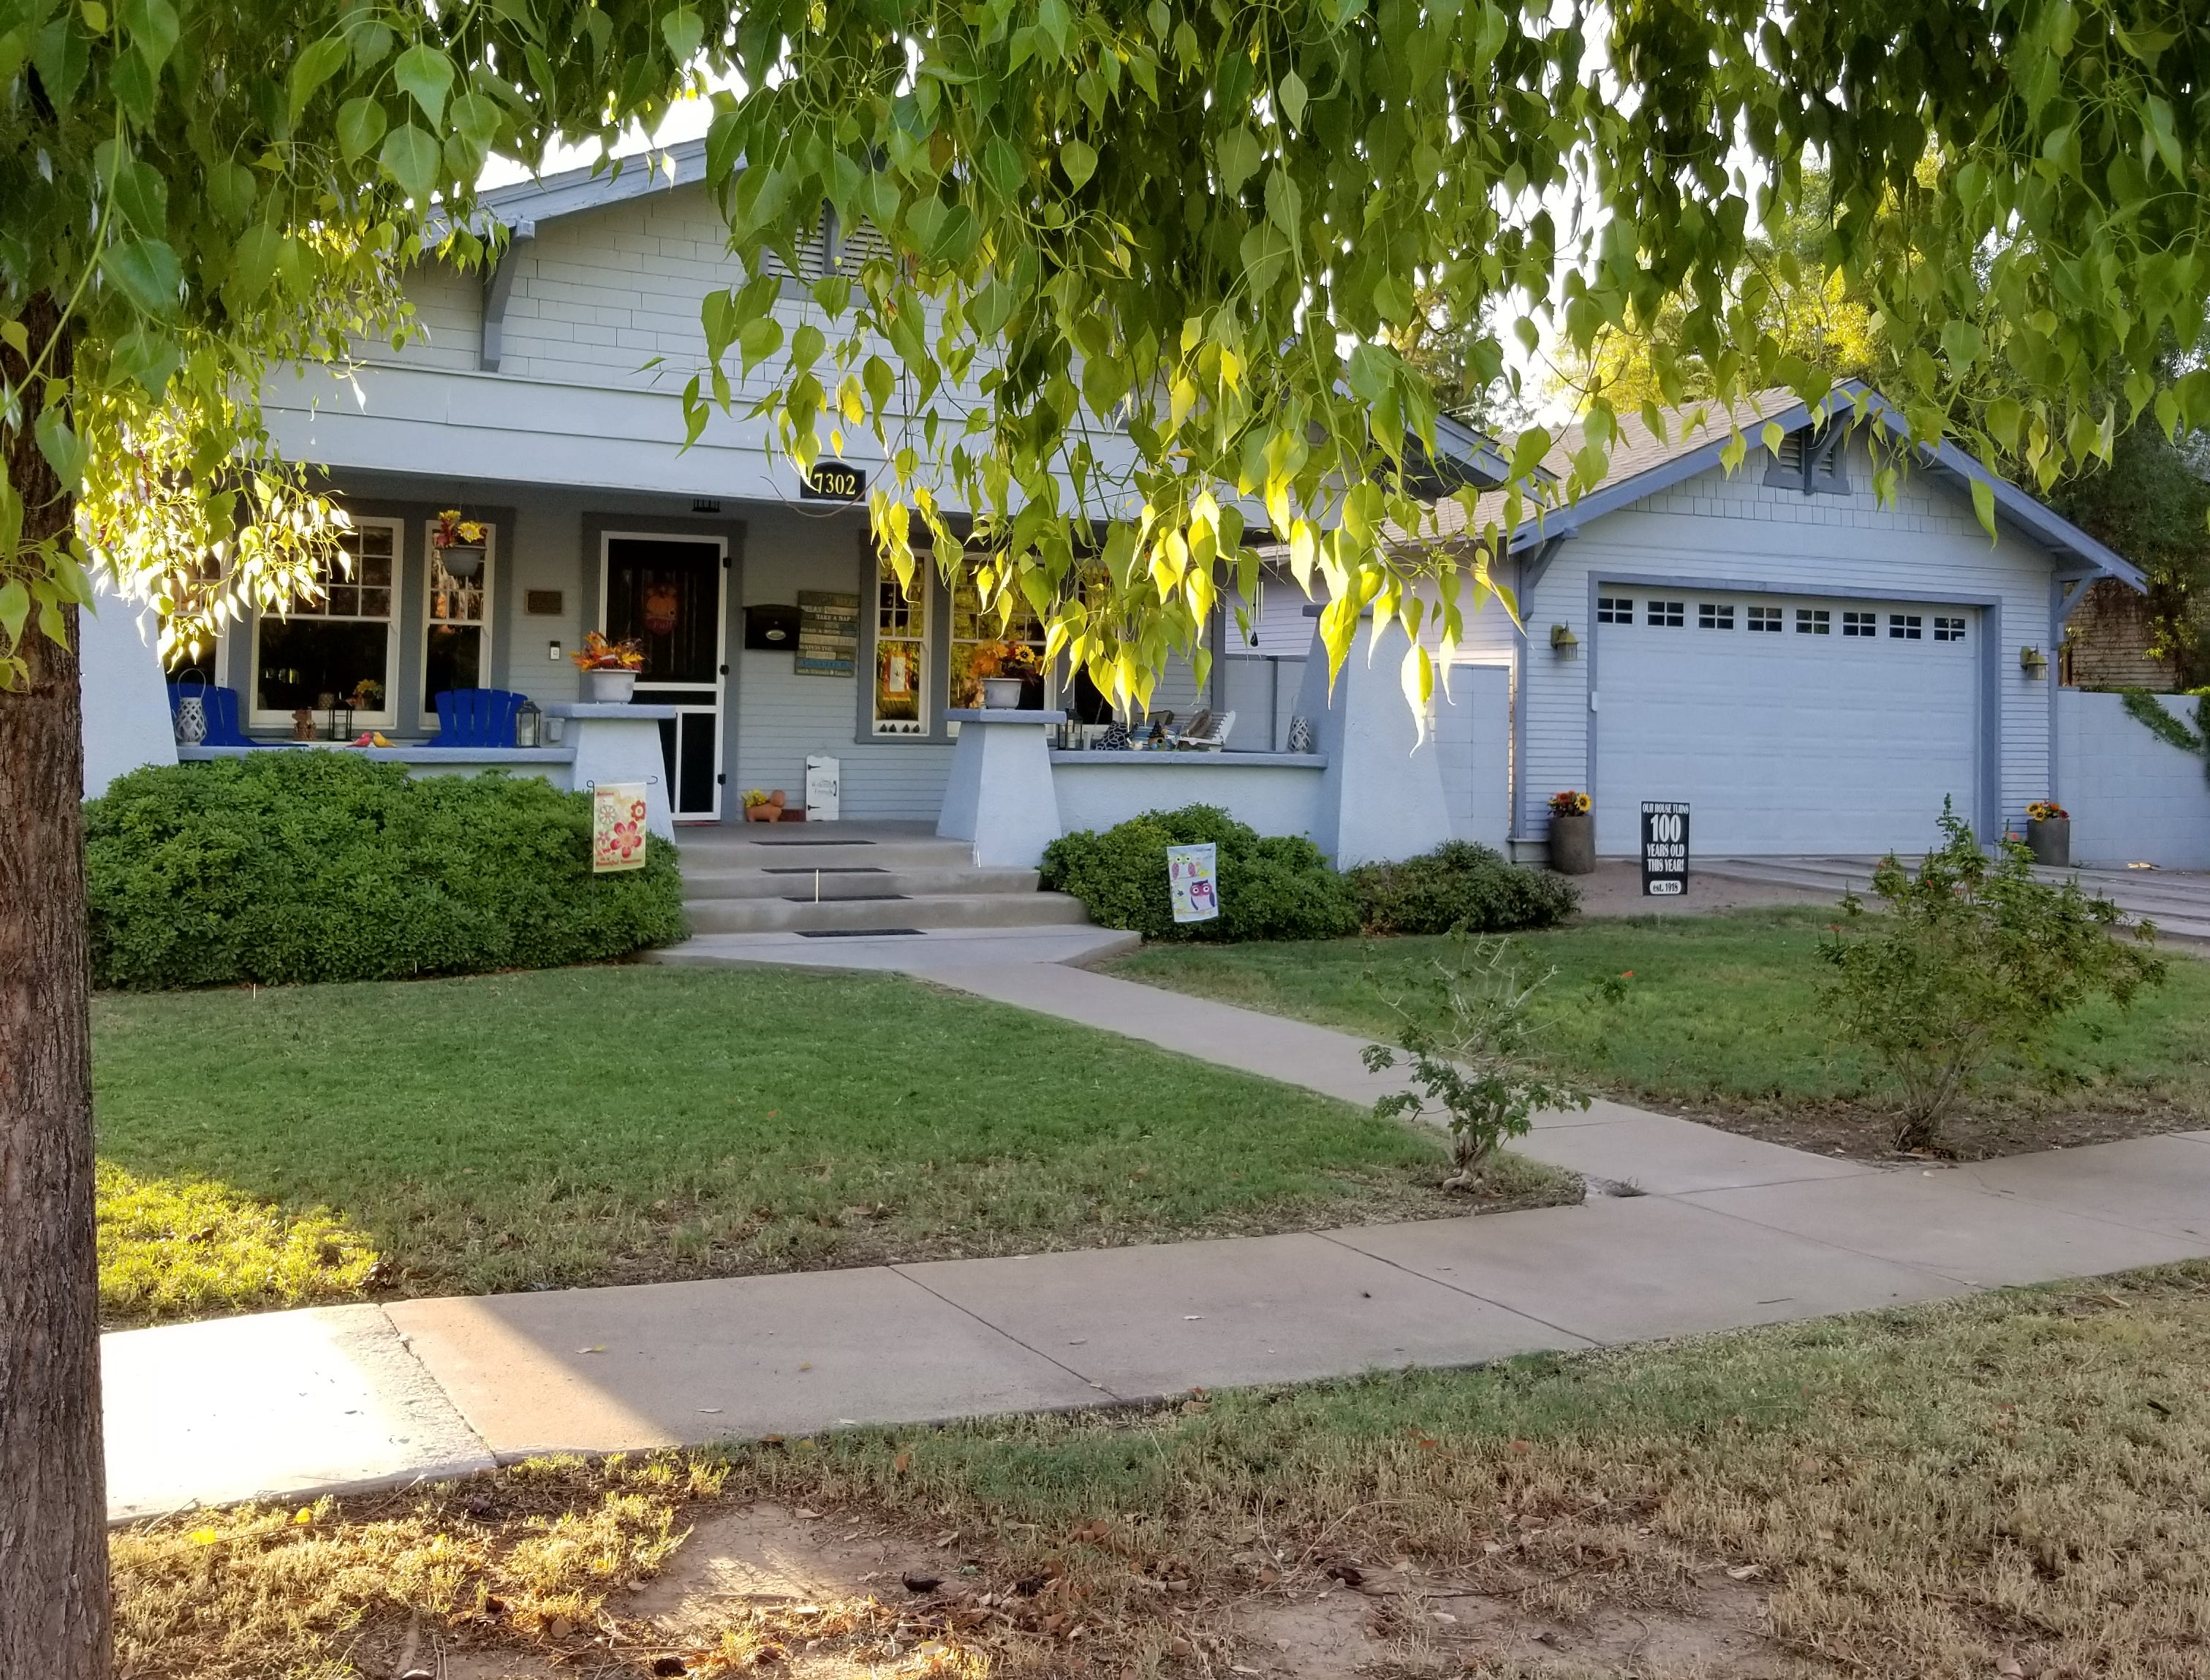 The outside of the Glendale home.